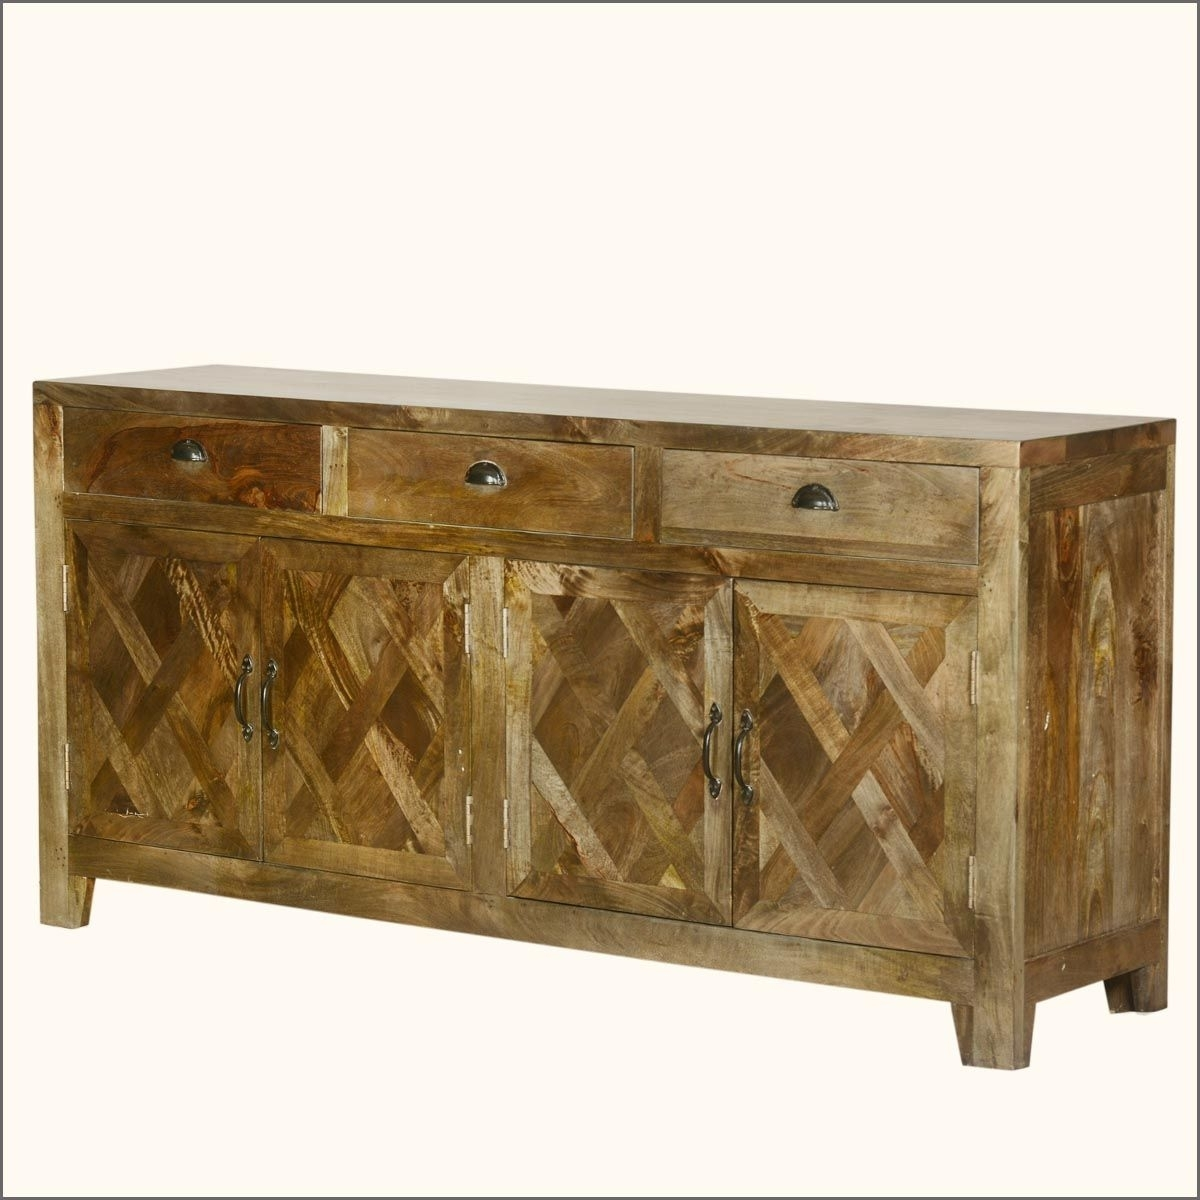 Parquet Farmhouse Mango Wood Rustic Sideboard Buffet Cabinet With Regard To Recent Parquet Sideboards (#13 of 20)